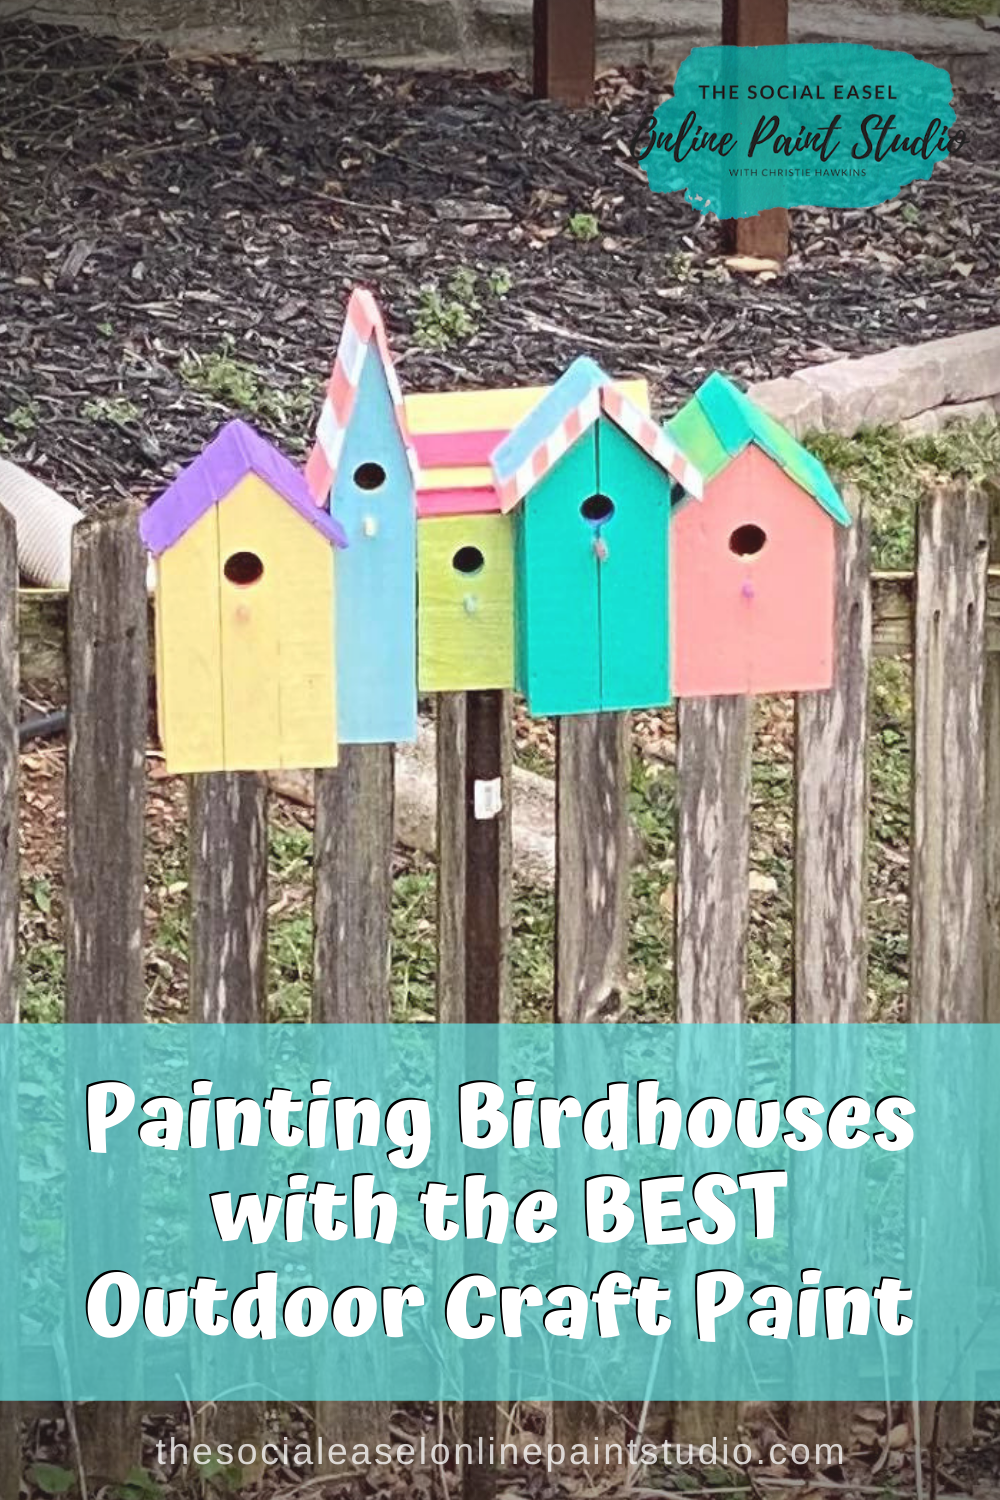 The Best Outdoor Craft Paint In 2020 Painting Crafts Outdoor Crafts Painted Wood Crafts